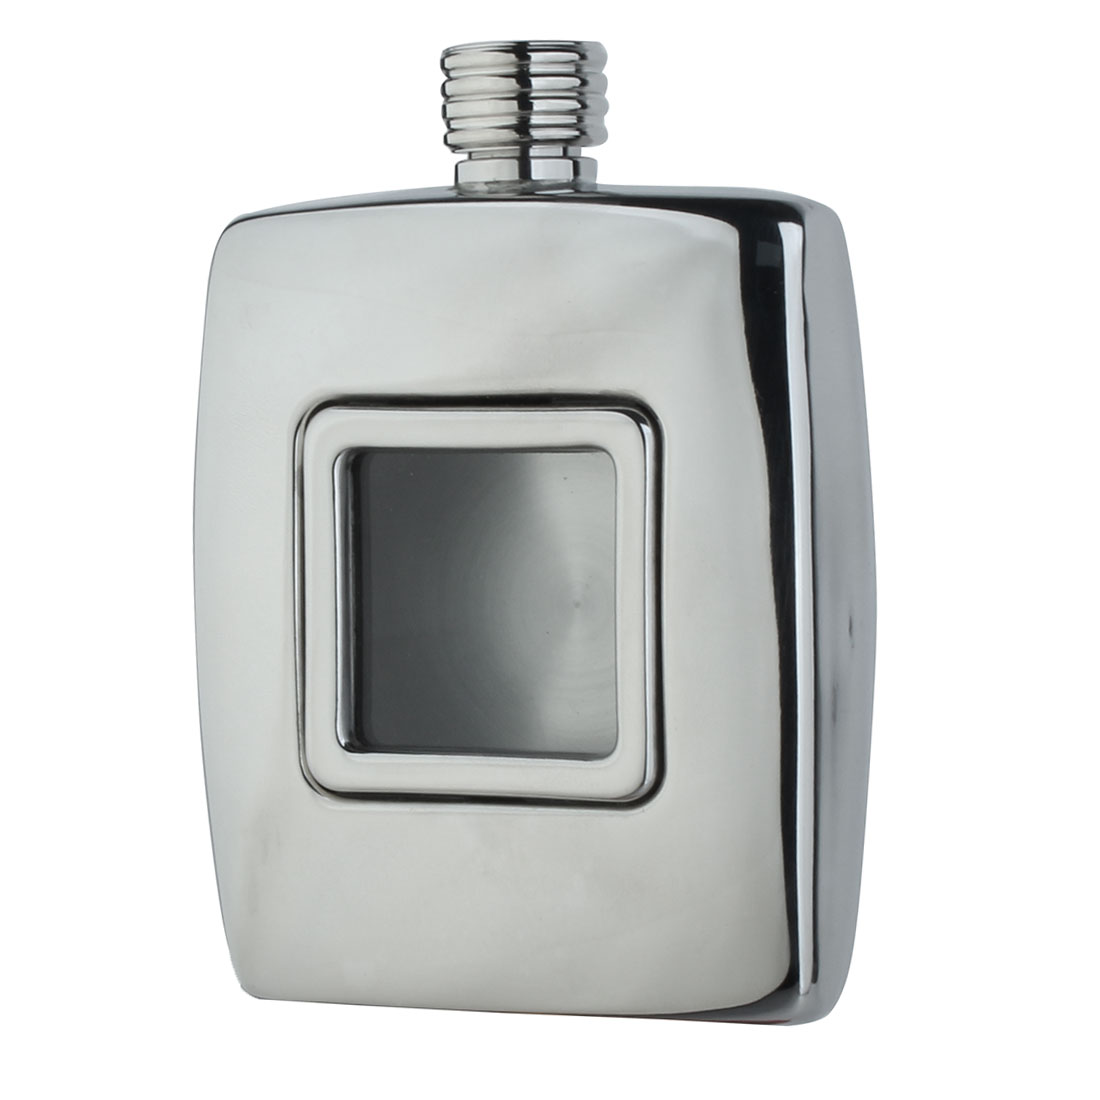 Pocket 6oz Hip Flask Wine Bottle Drink Alcohol Whisky Liquor Vodka Holder